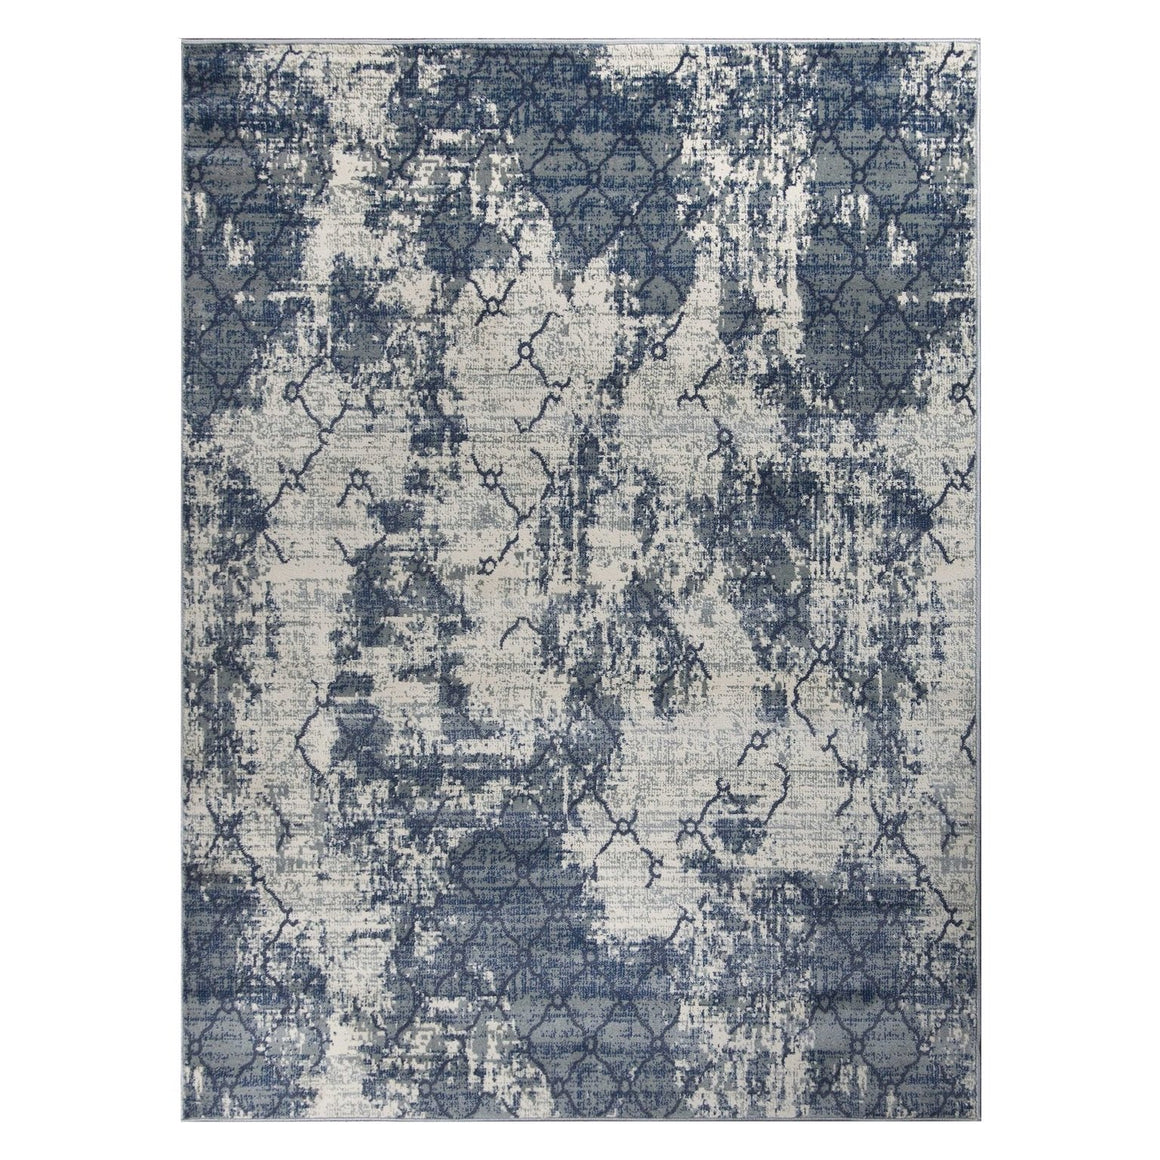 S&C Ishion Area Rug - Full Product View